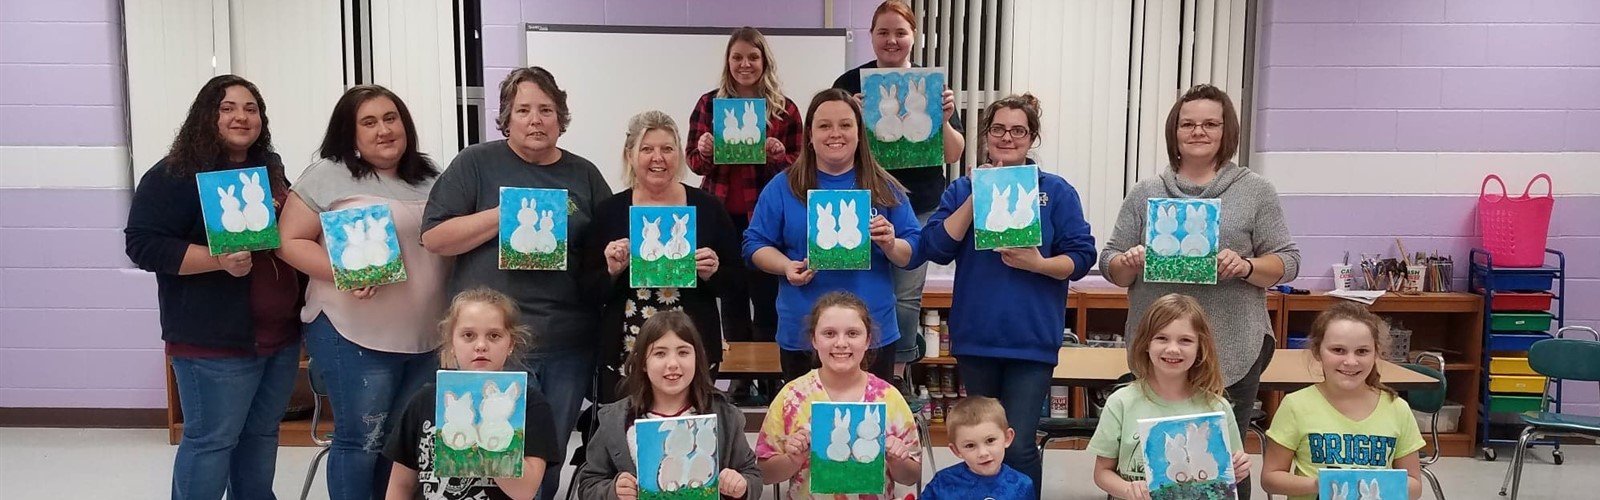 Families enjoyed painting together at a Family Fun Event!